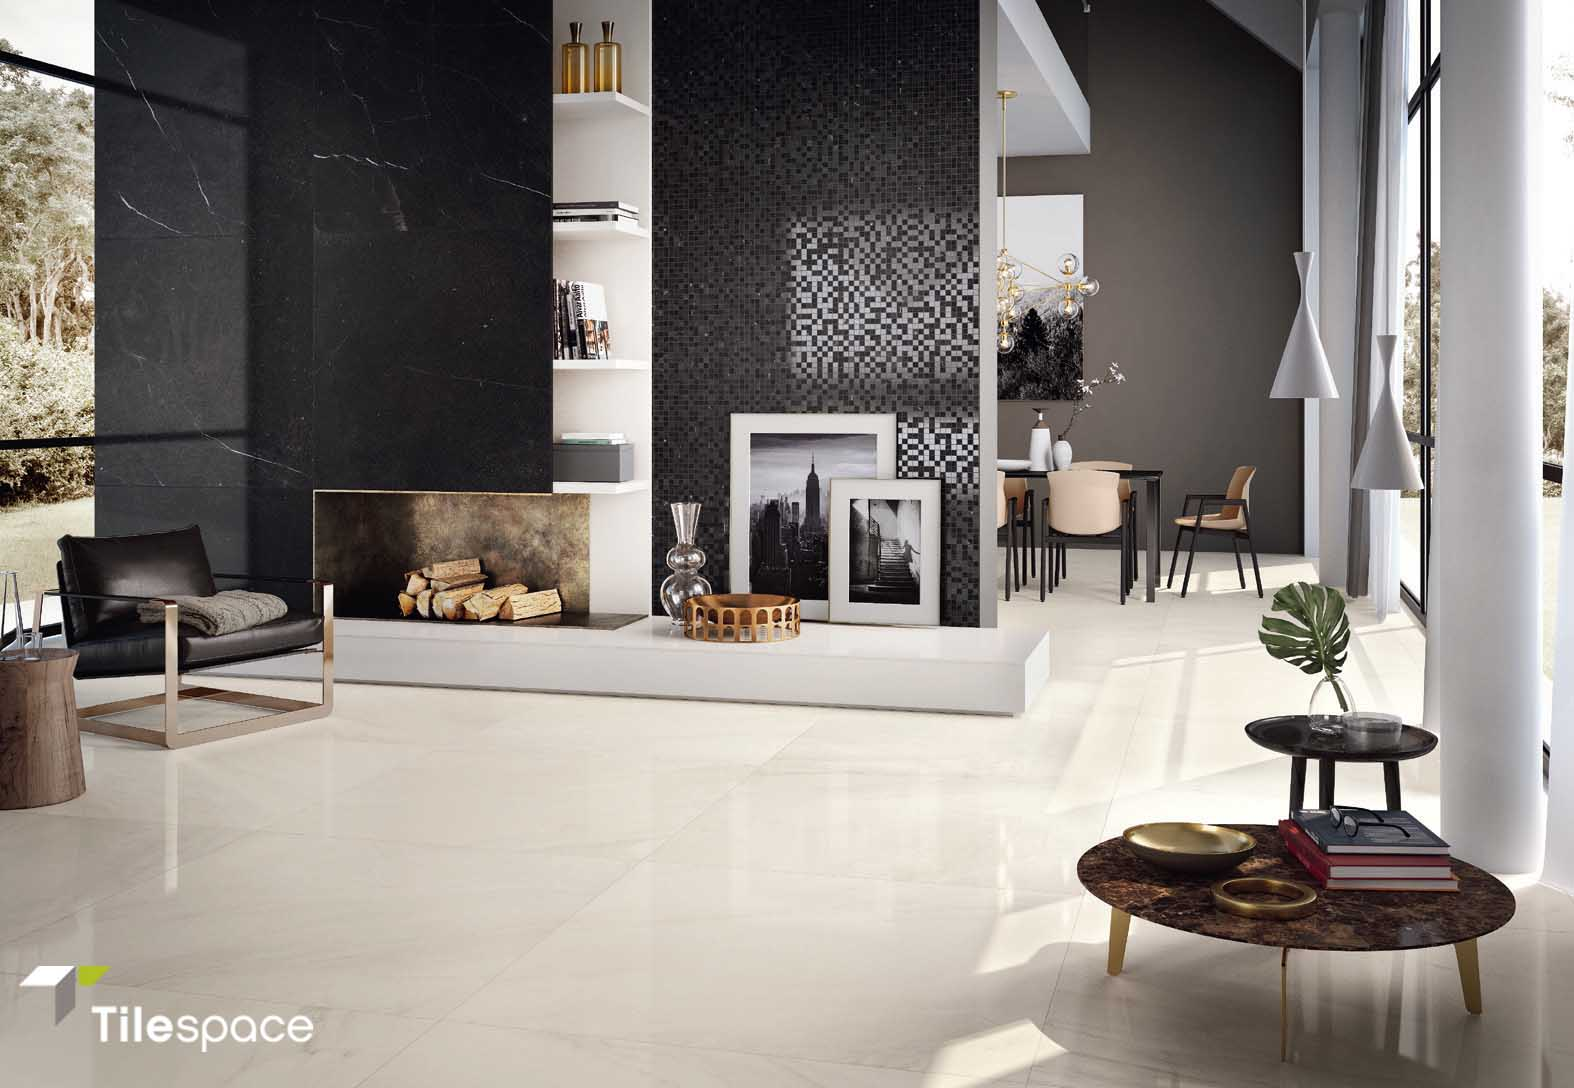 Getting a larger effect with tiles - Floor Tiles Cape Town